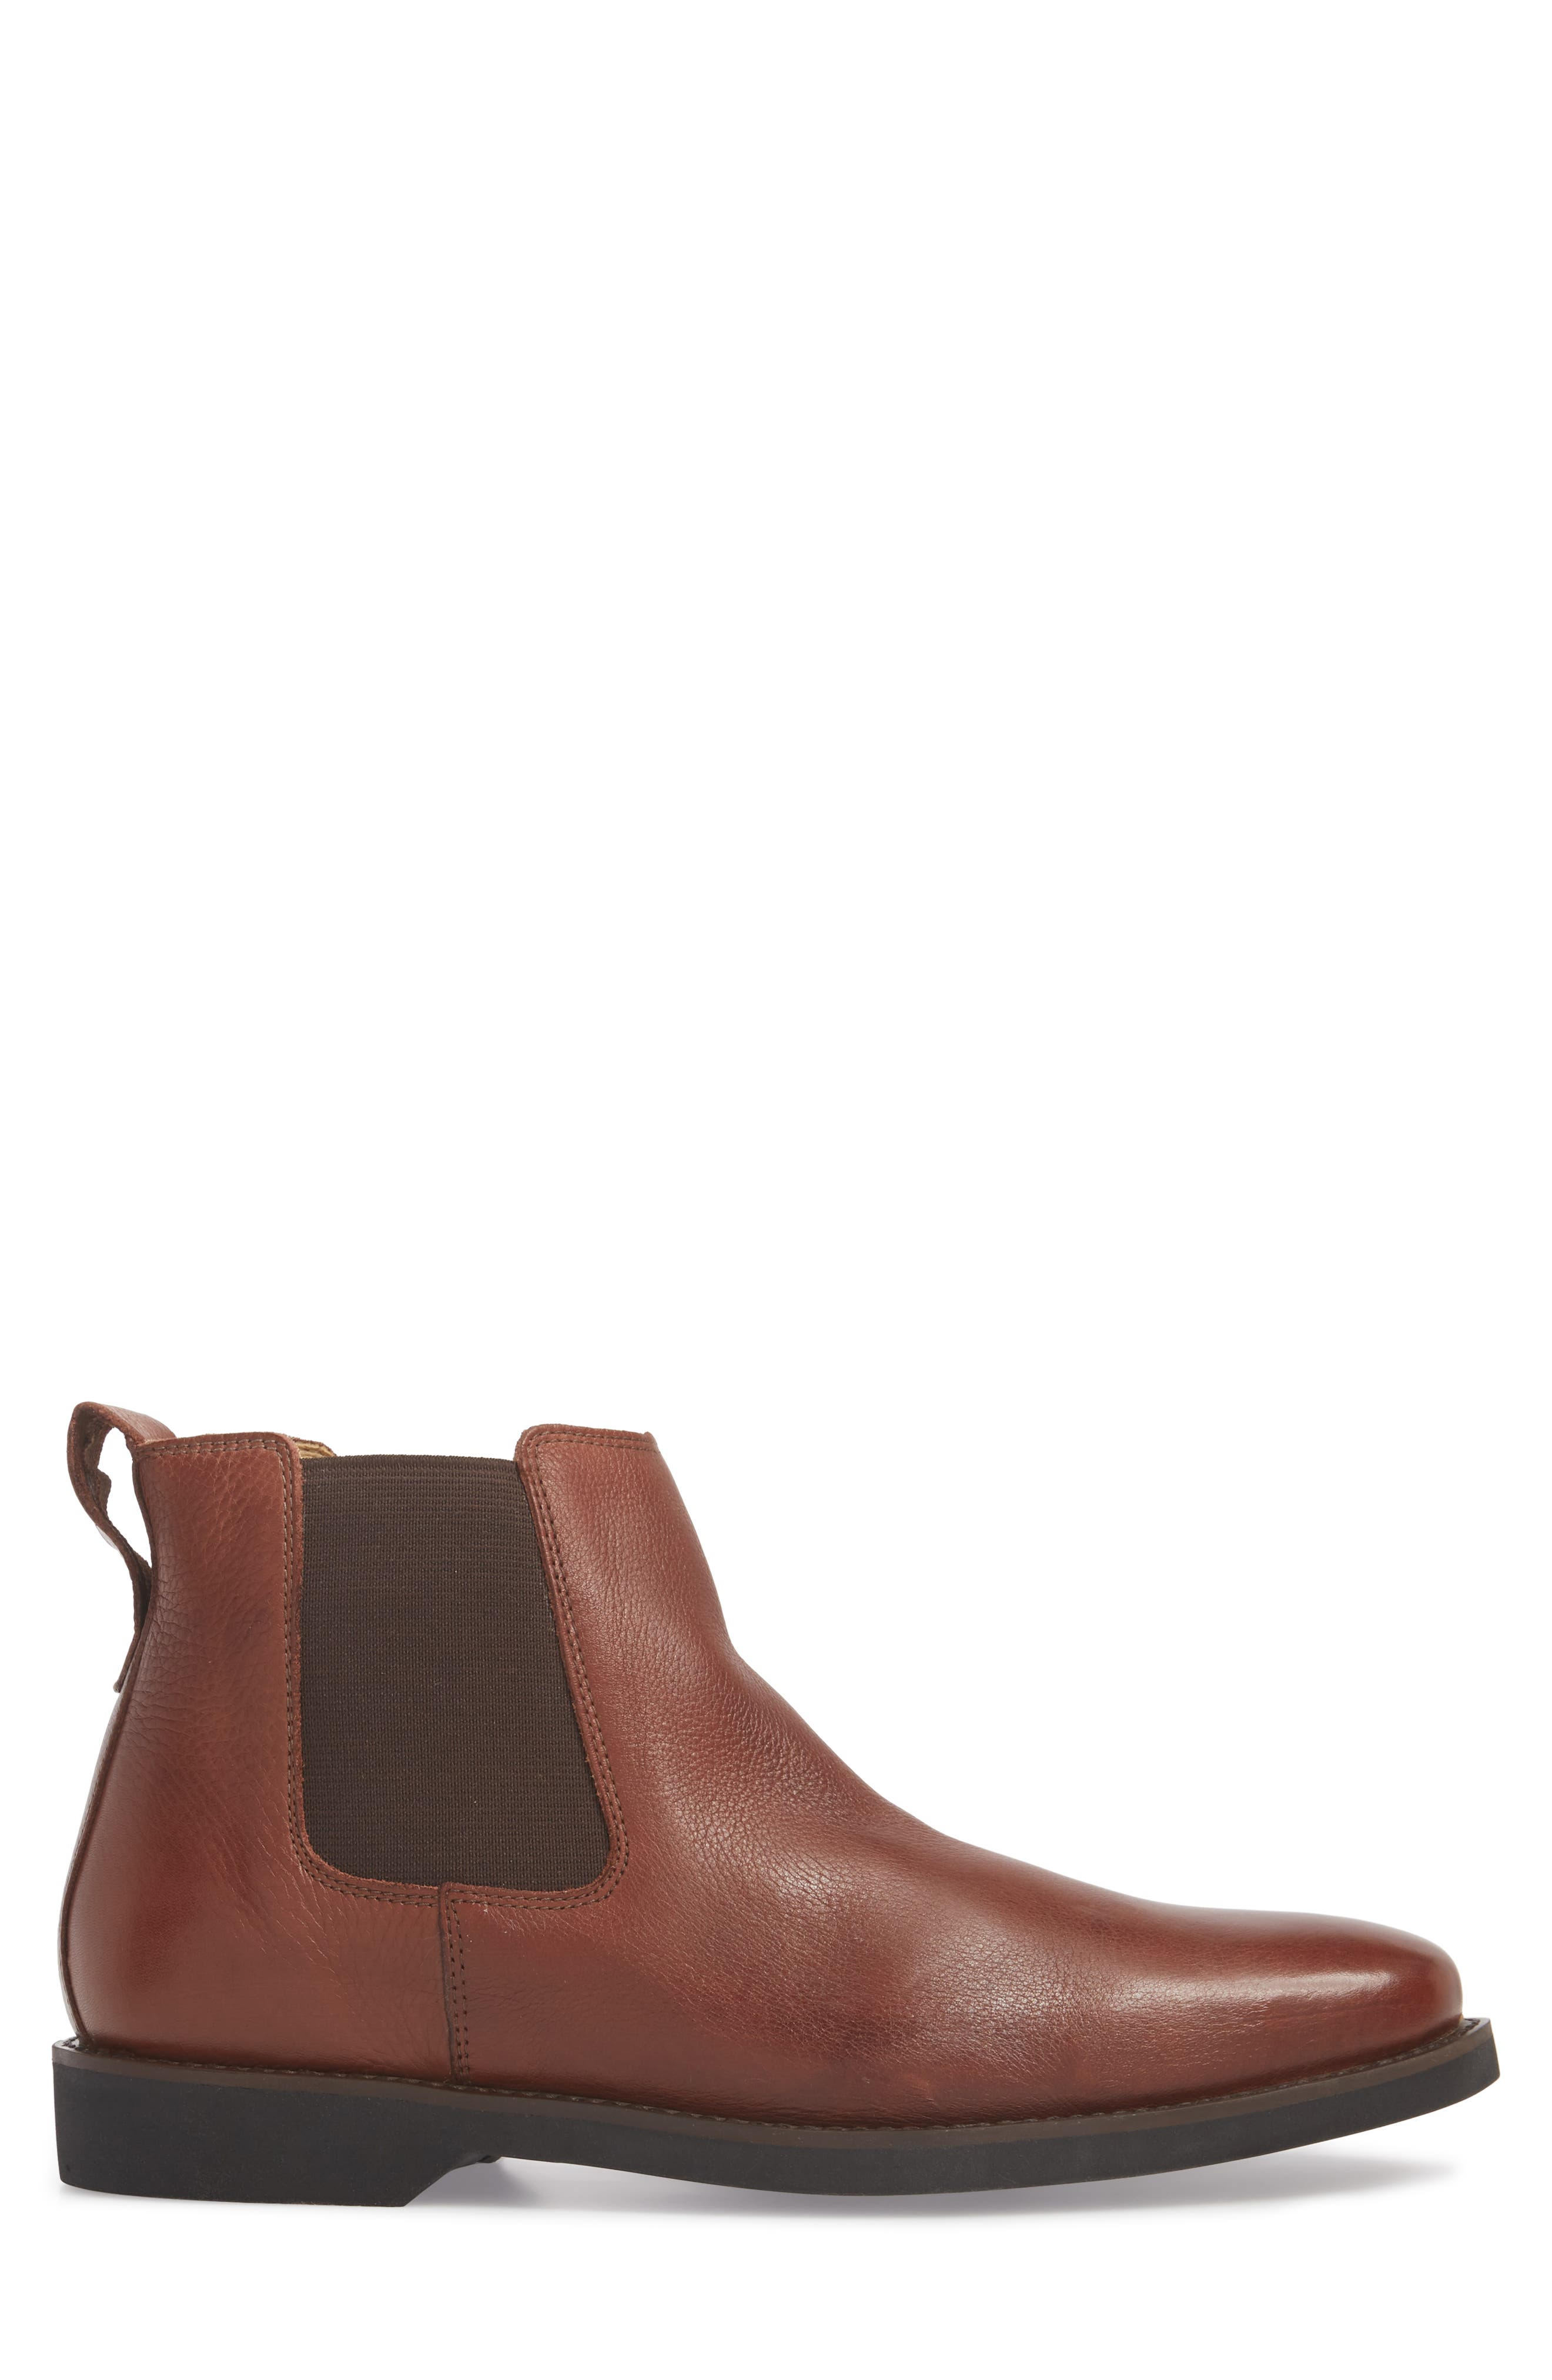 Cardoso Chelsea Boot,                             Alternate thumbnail 3, color,                             Floater Pinaho Leather